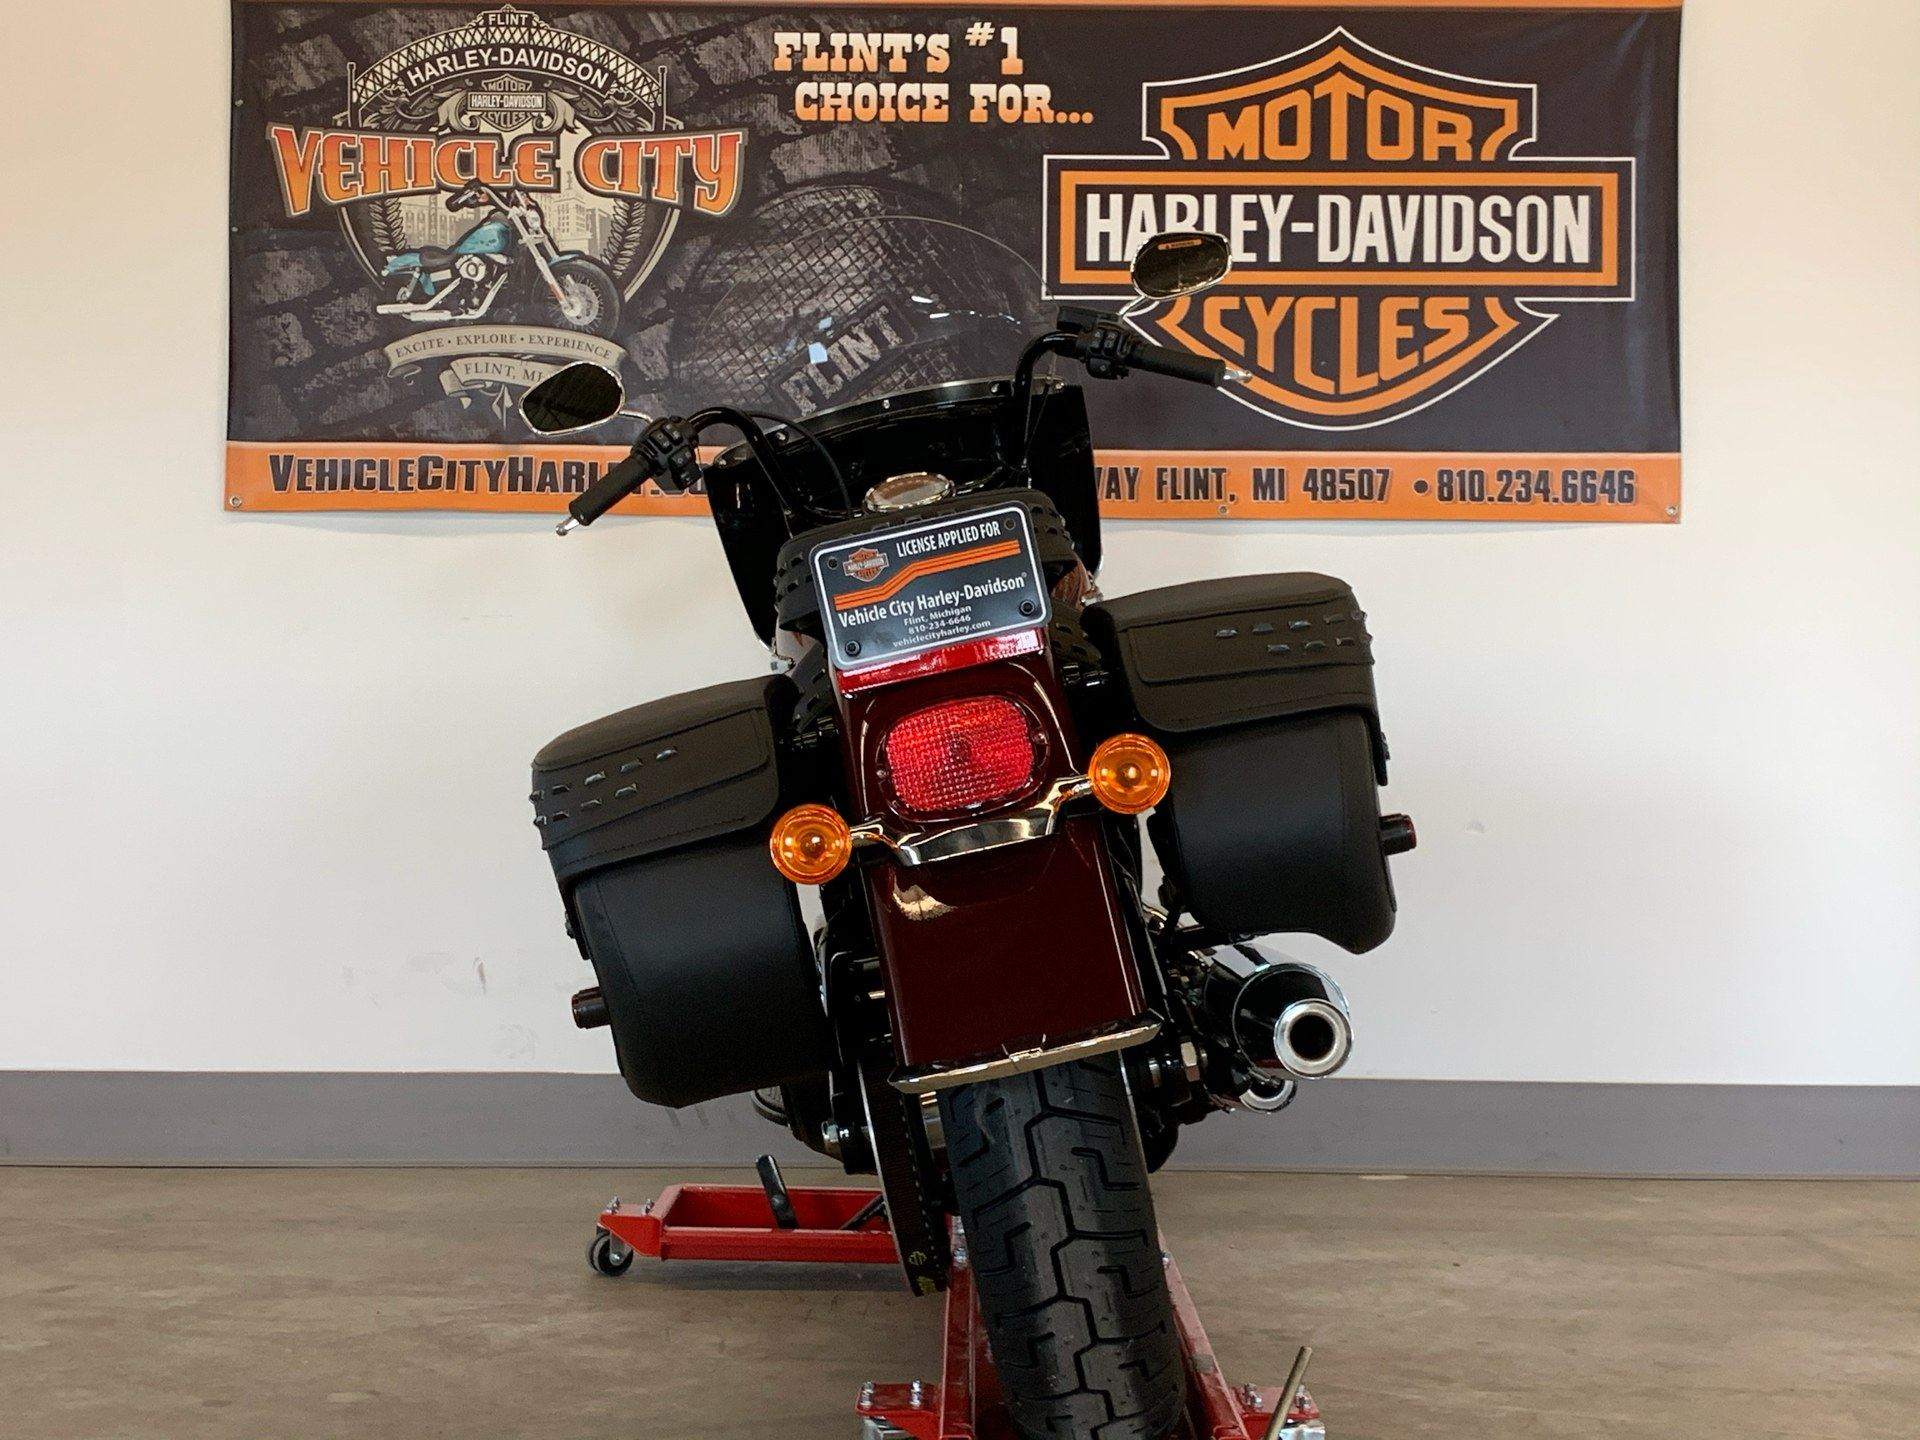 2020 Harley-Davidson Heritage Classic 114 in Flint, Michigan - Photo 7